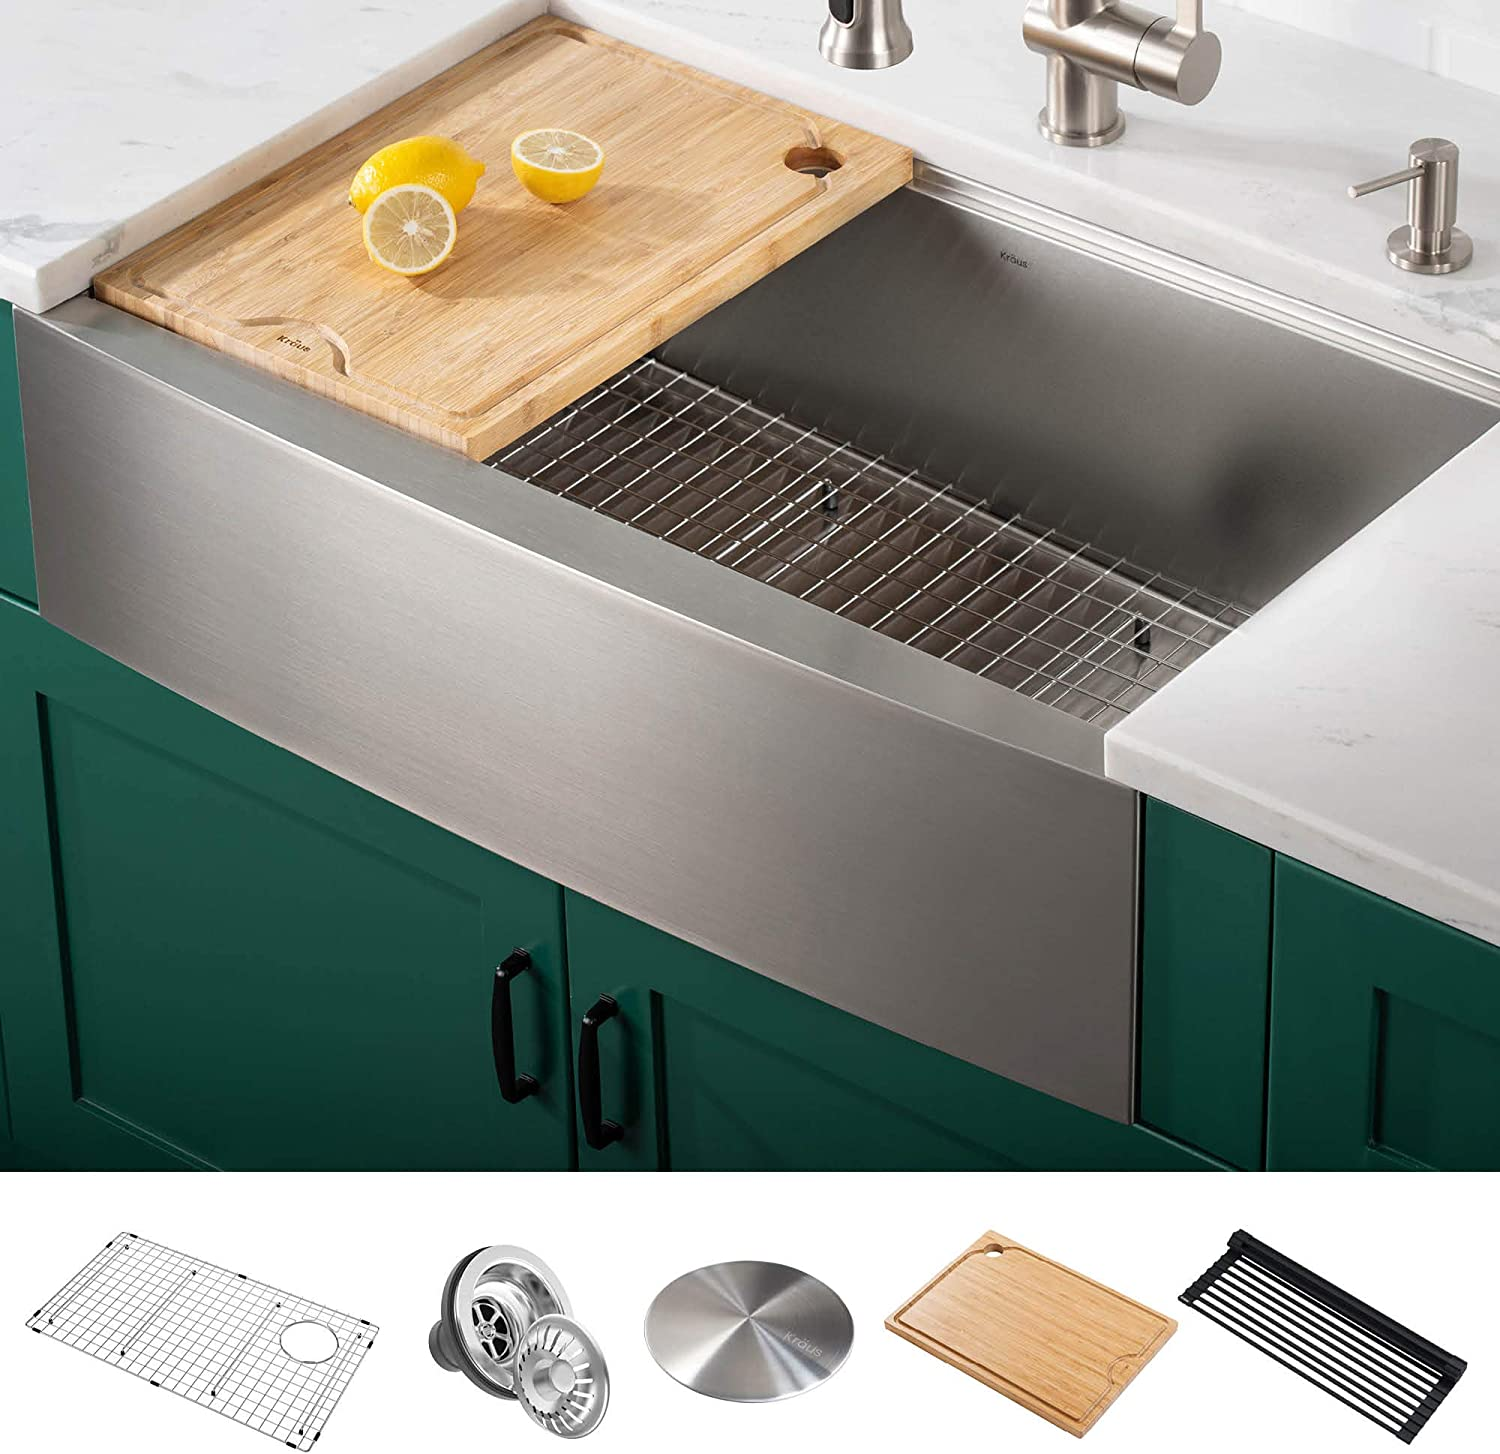 Kraus KWF210-36 Kore Workstation 16 Gauge Farmhouse Single Bowl Stainless Steel Kitchen Sink with Integrated Ledge and Accessories (Pack of 5), 36 Inch Rounded Apron Front